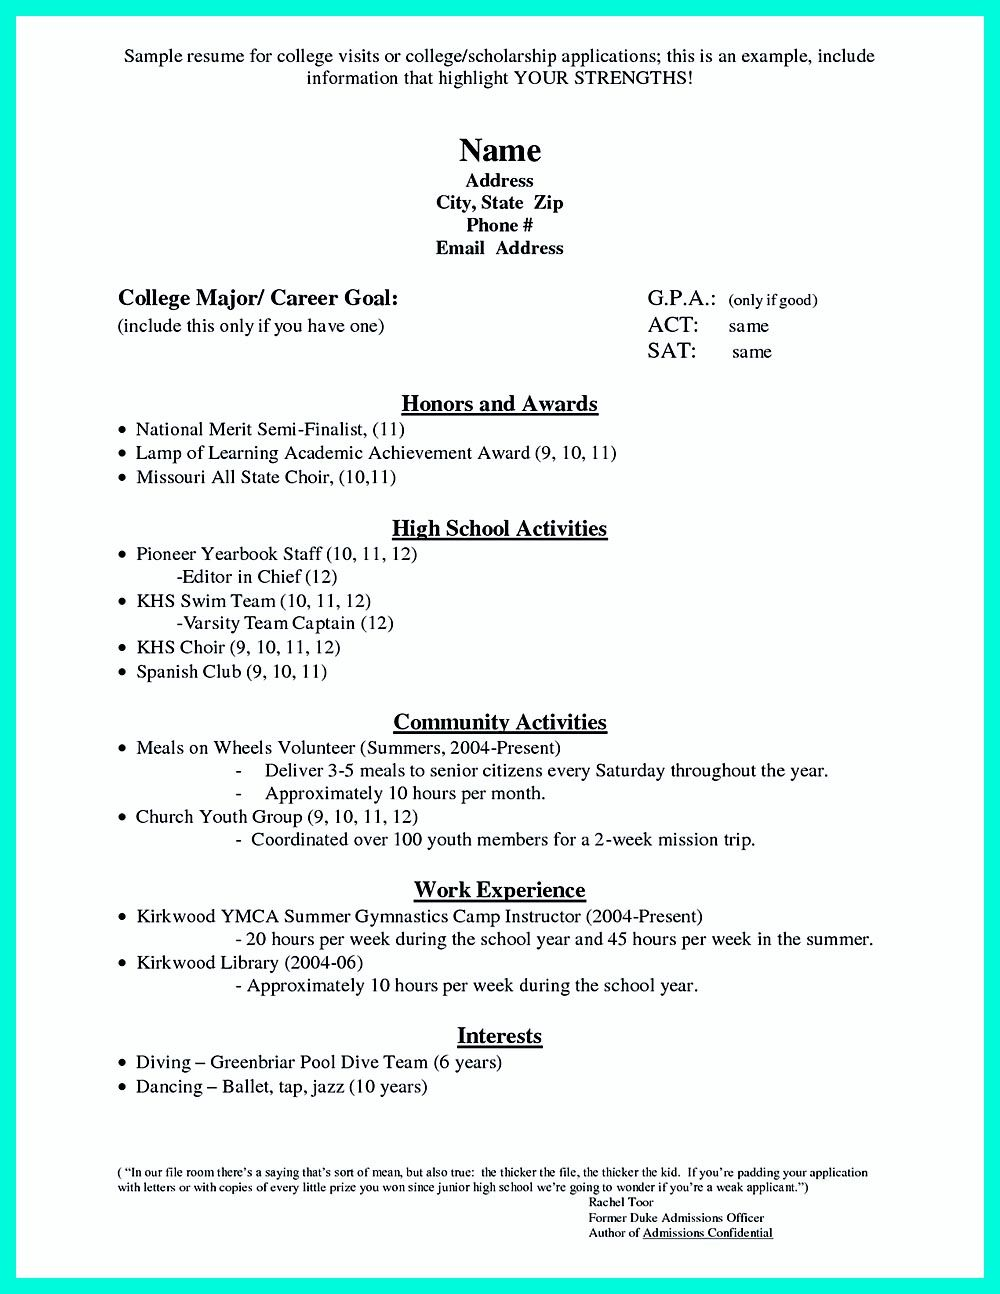 ymca volunteer sample resume resignation format word hedge fund college graduate needed you think admission cover letter with work experiences also - College Admissions Resume Template For Word